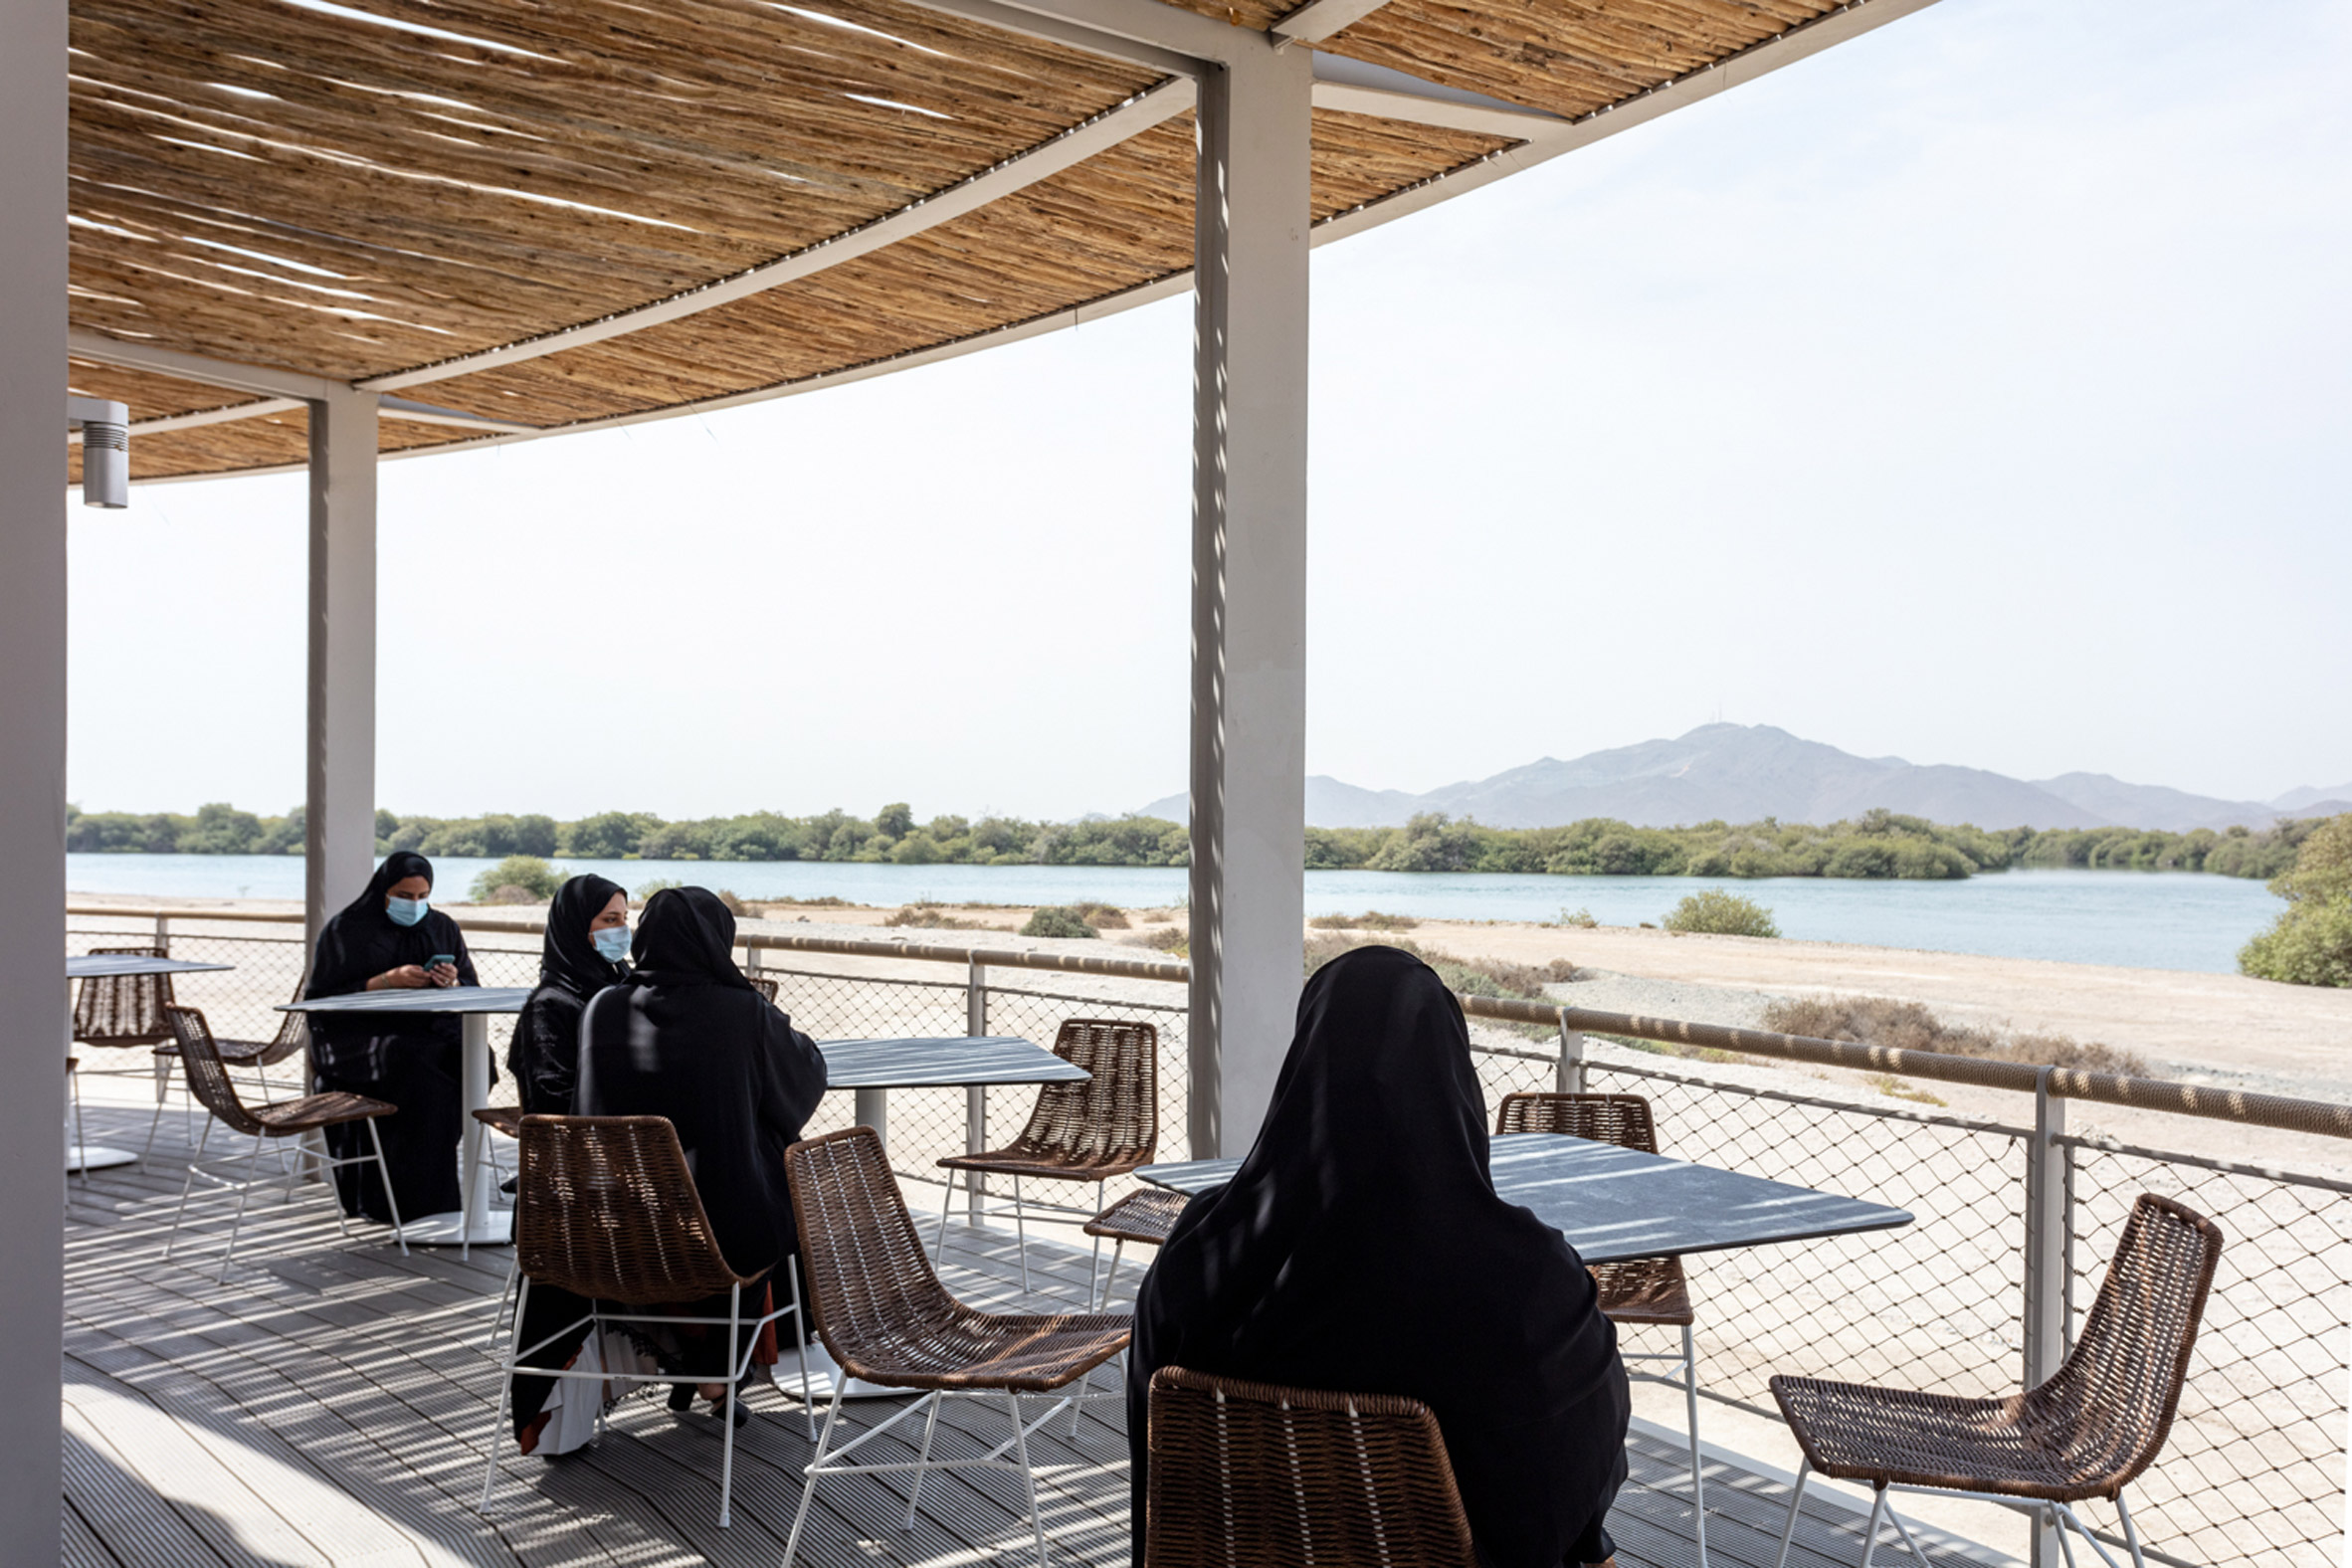 Cafe at Khor Kalba Turtle Wildlife Sanctuary